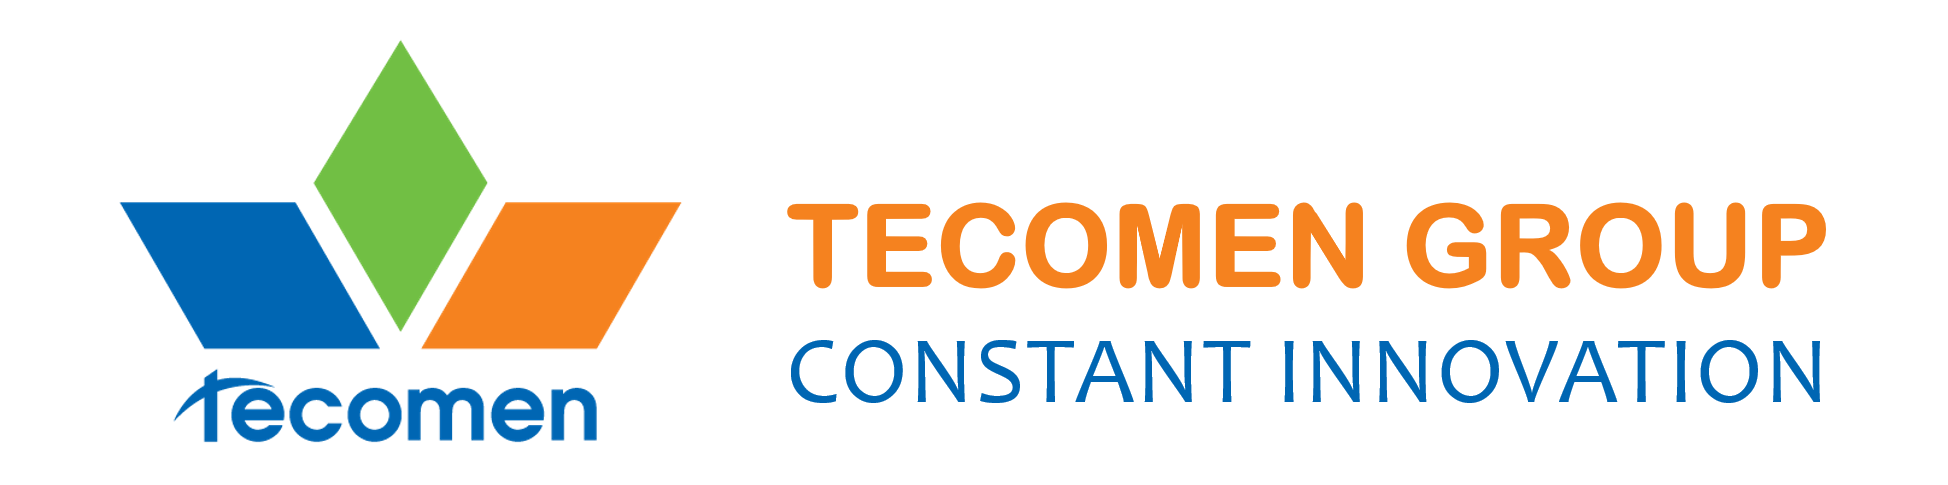 Tecomen Vietnam - The Leading Manufacturer Of Water & Air Filtration Products